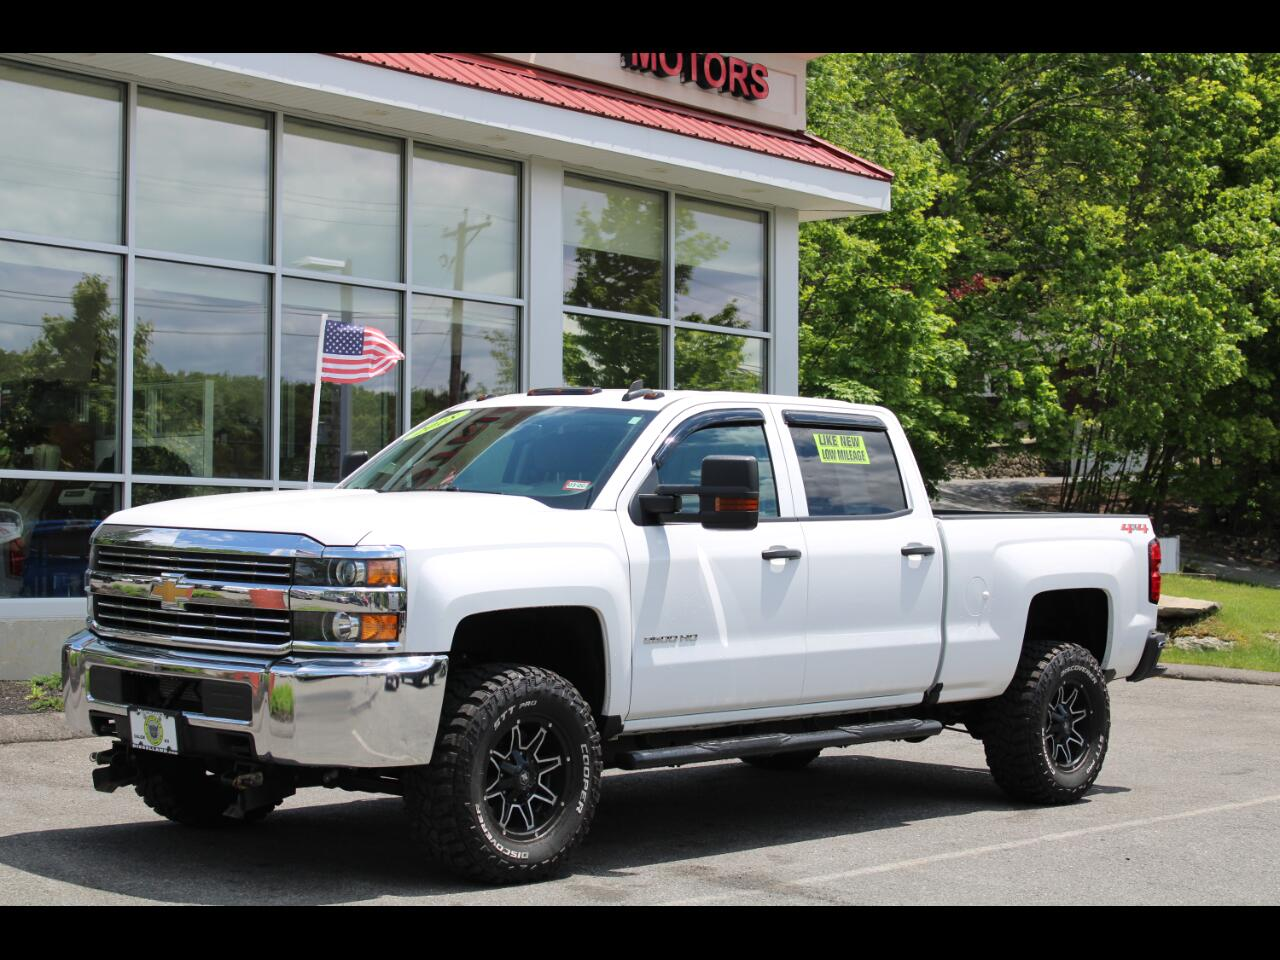 2018 Chevrolet Silverado 2500HD CREW CAB SHORTBED LIKE BRAND NEW ONLY 8,000 MILES